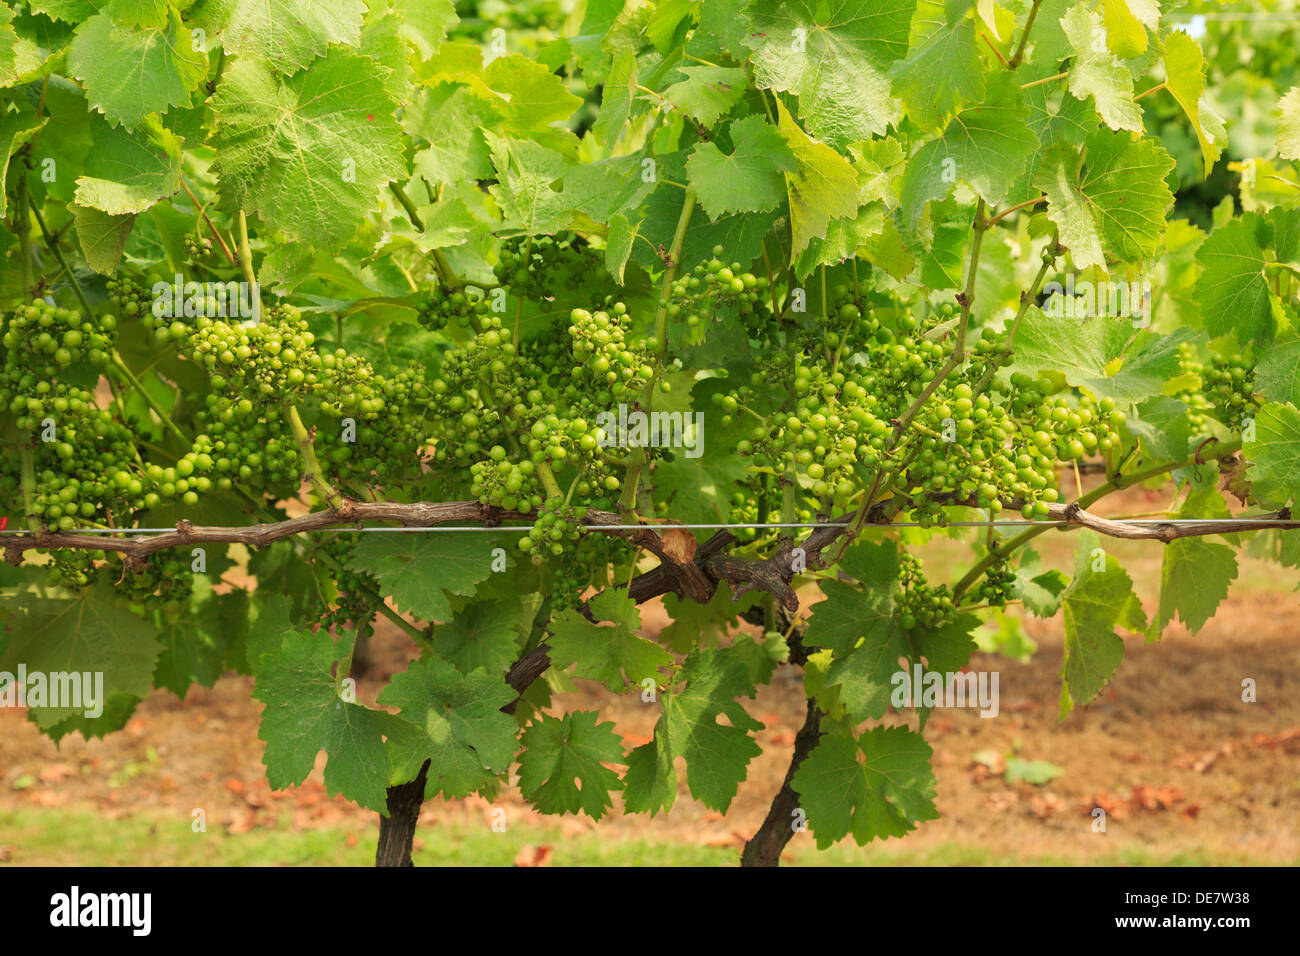 Ripening bunches of white wine grapes on vines growing in a vineyard in late summer at Biddenden, Kent, England, - Stock Image